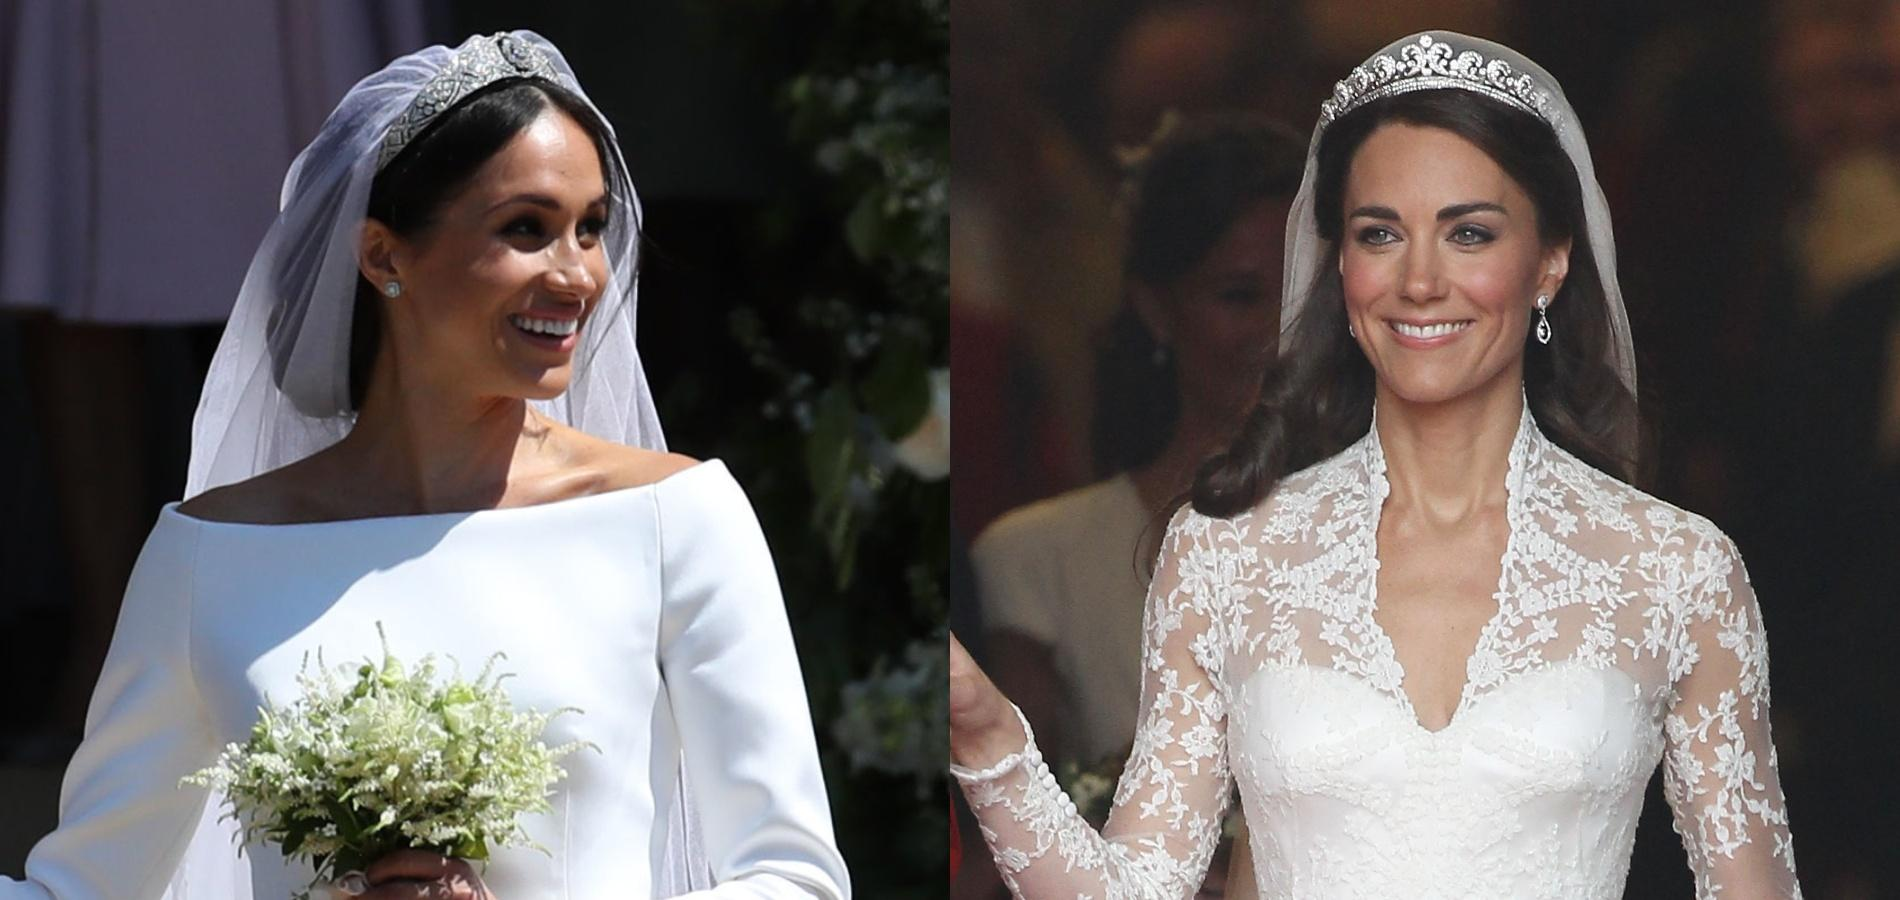 Le Match Des Robes De Mariee De Kate Middleton Et Meghan